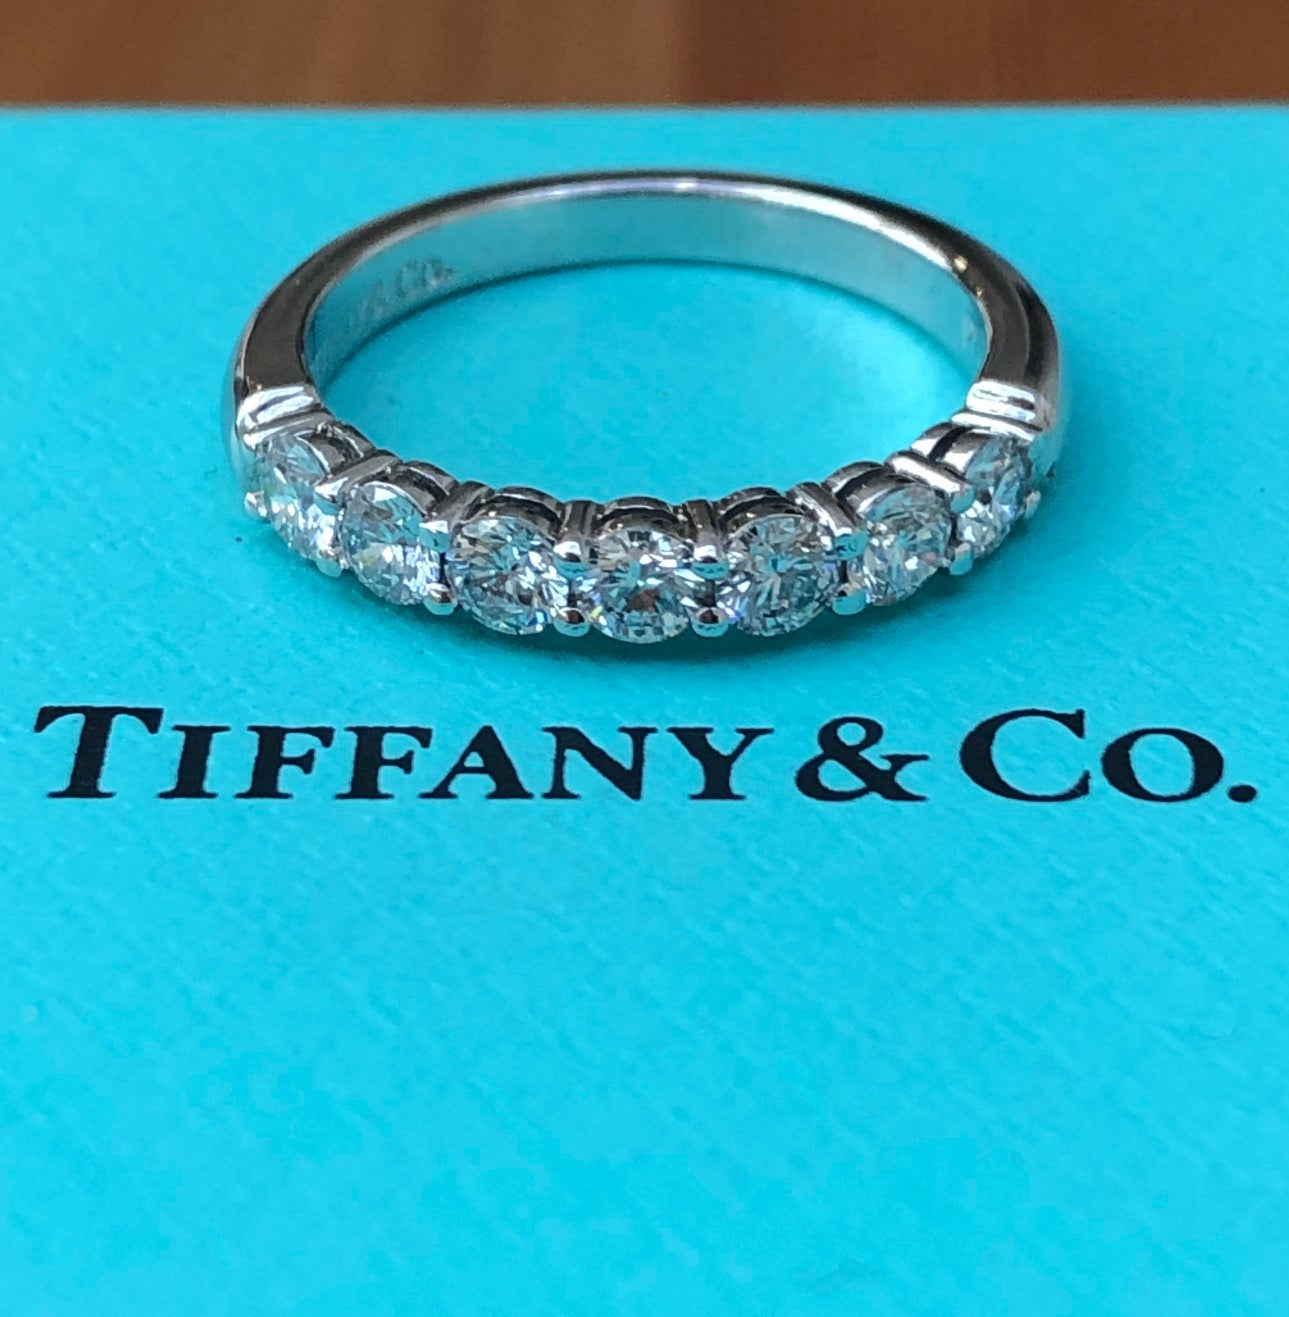 Tiffany & Co. 0.57tcw Diamond Embrace 3mm Half Eternity Band PT950 $9400 Rct/Box